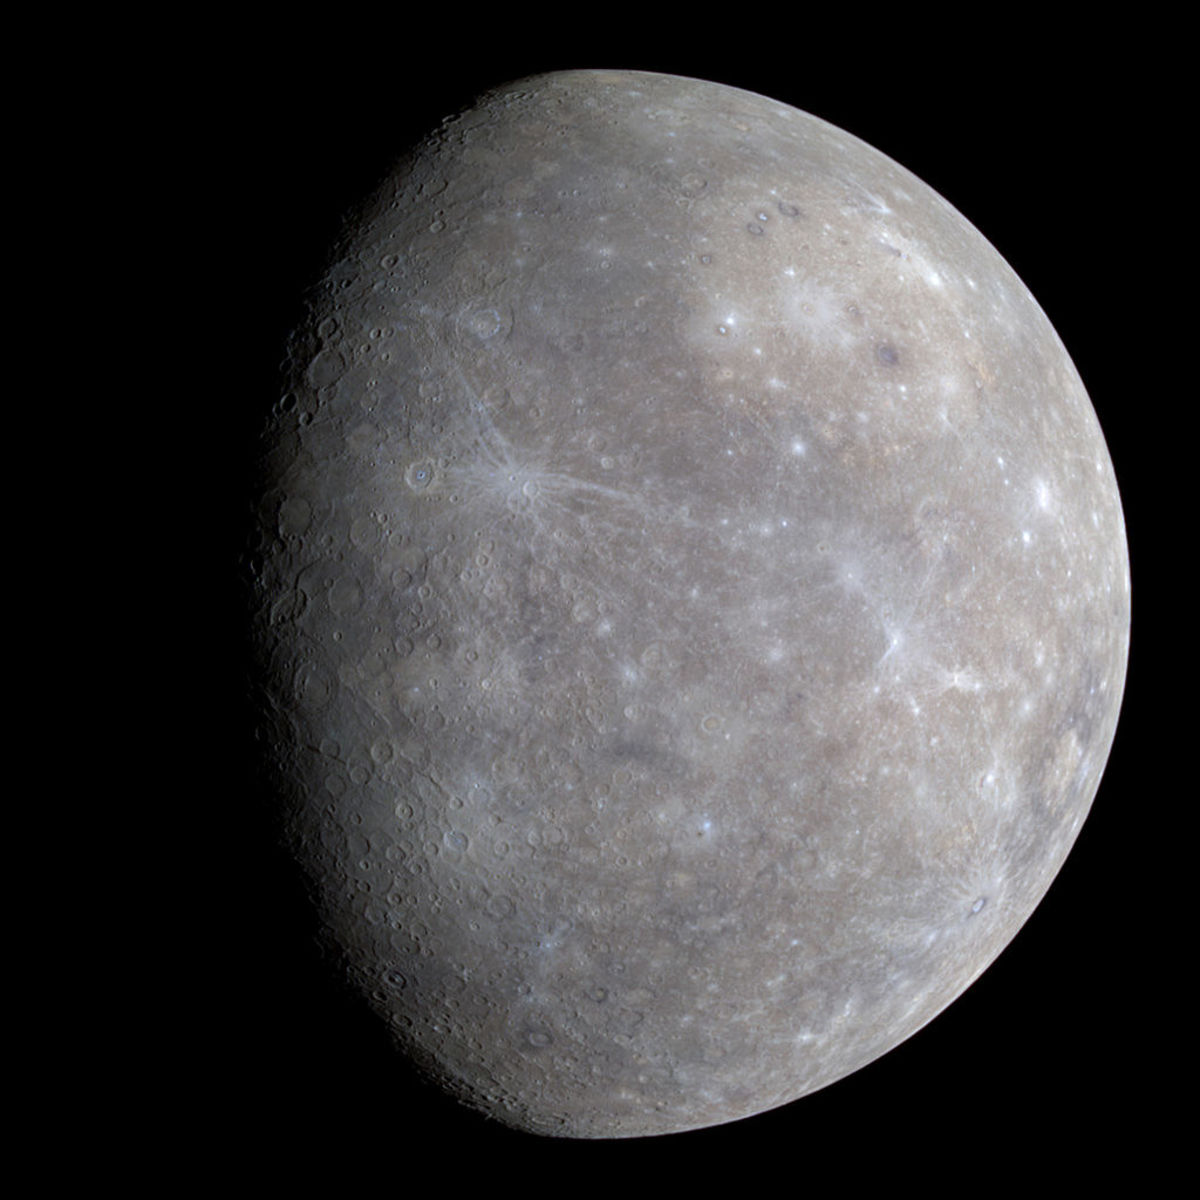 The planet Mercury (Image taken by MARINER).